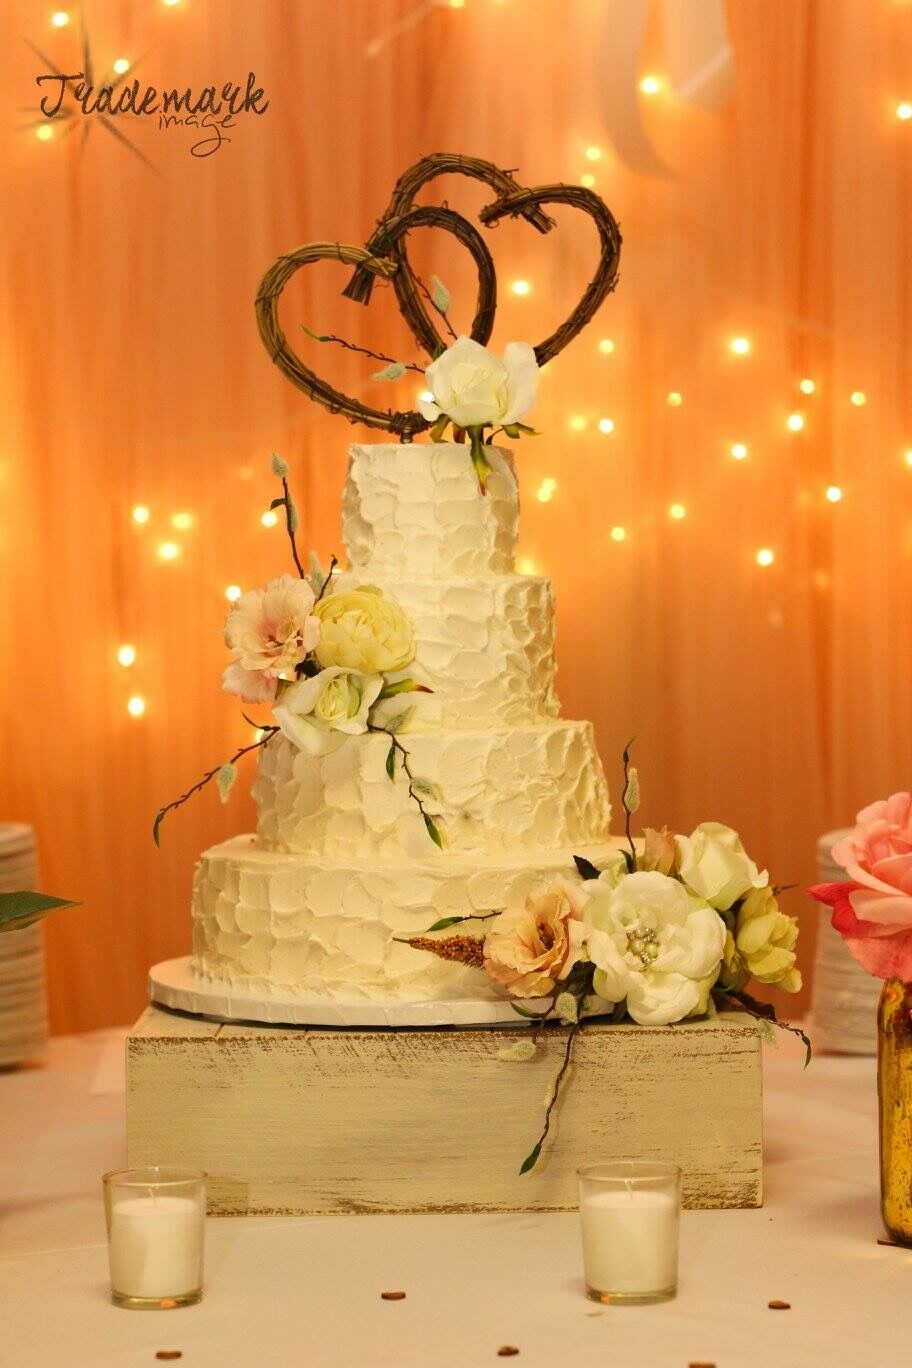 Wedding Cake Bakeries in Findlay, OH - The Knot